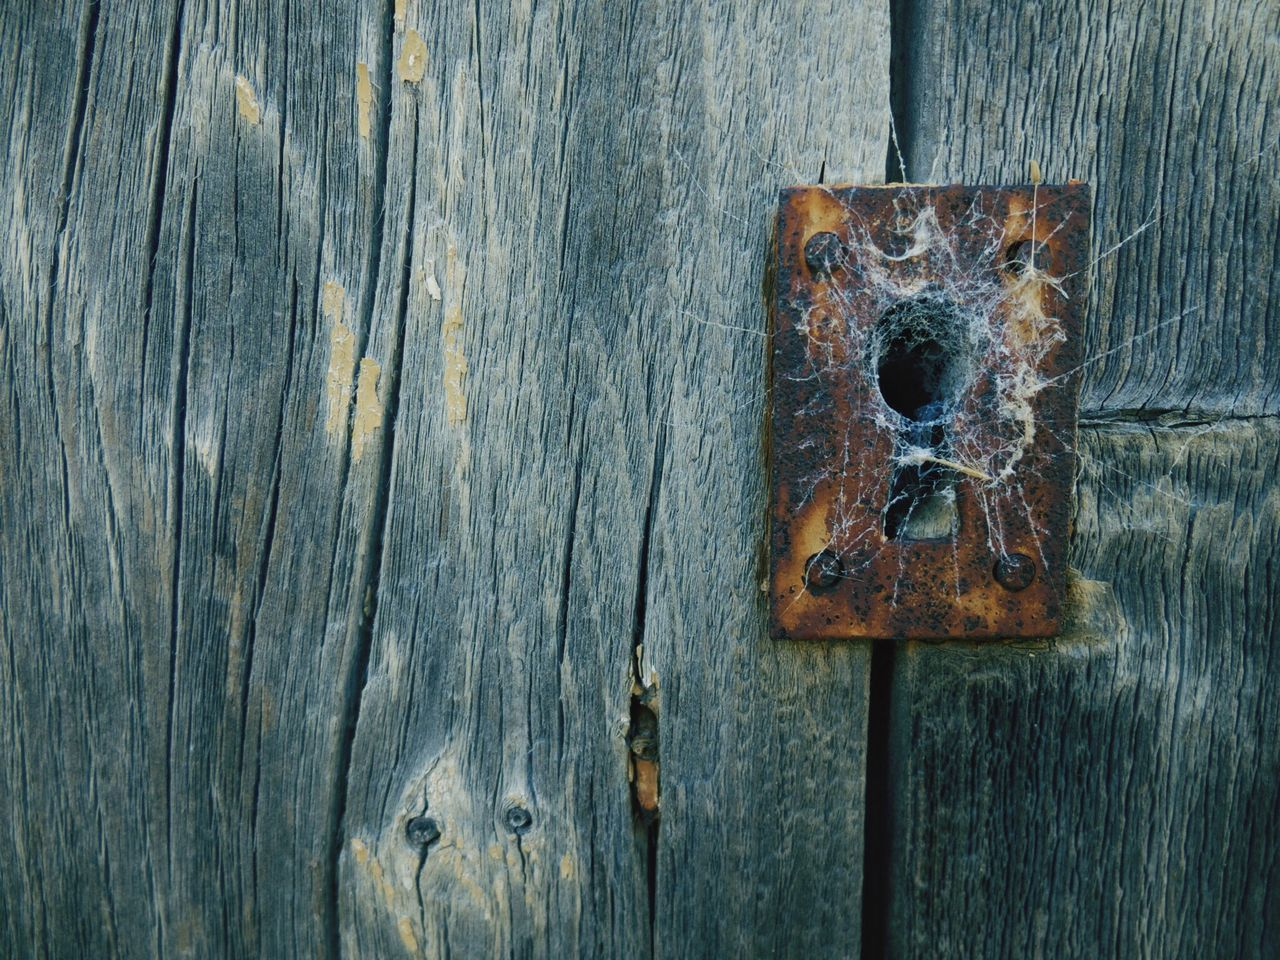 wood - material, door, old, textured, rusty, weathered, close-up, damaged, outdoors, no people, day, abandoned, bad condition, latch, backgrounds